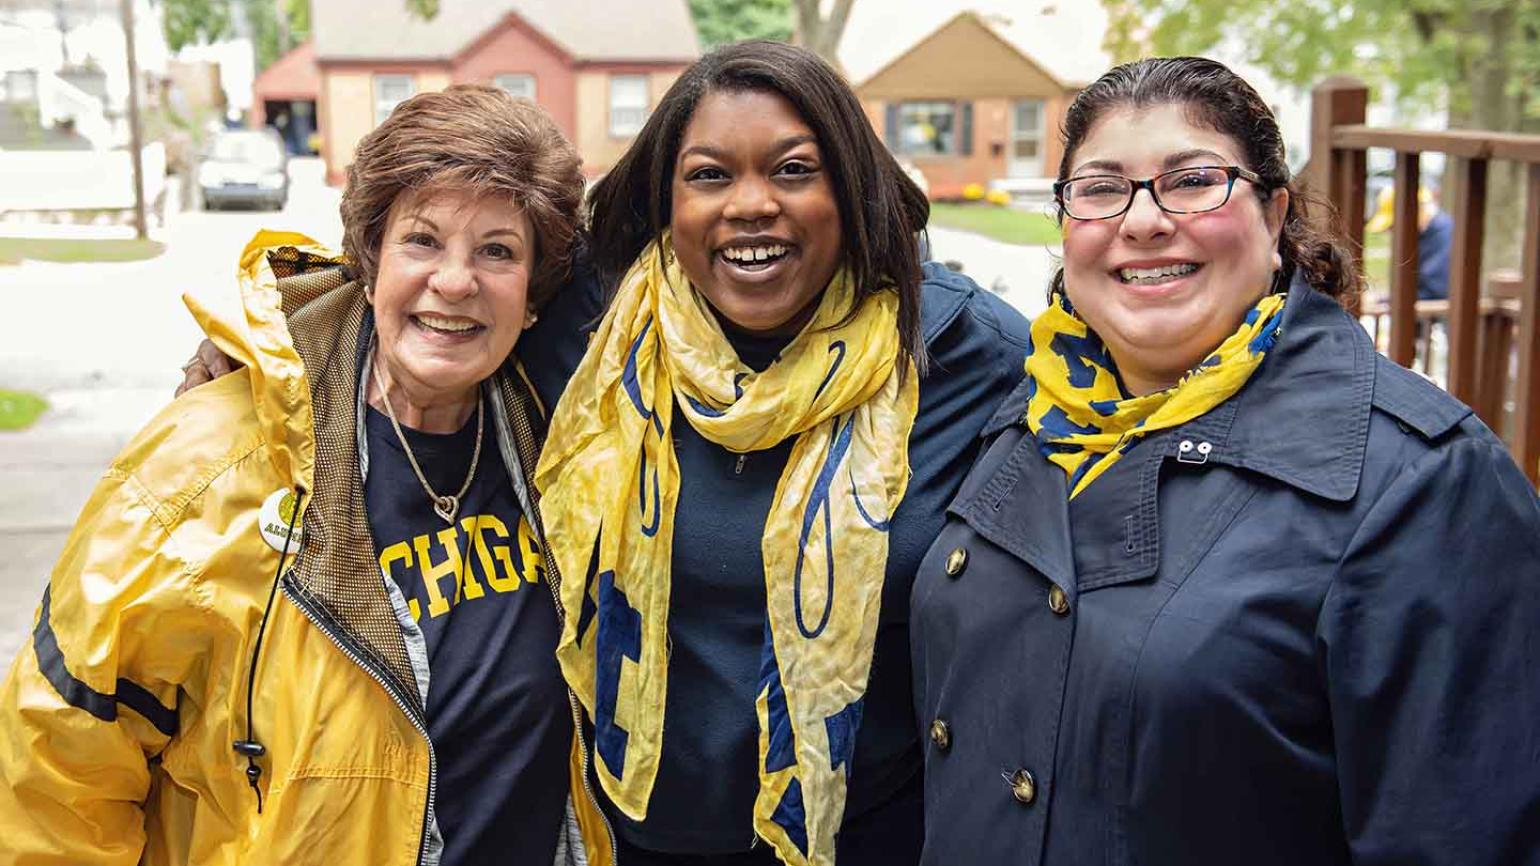 SOE tailgaters pose for a photo